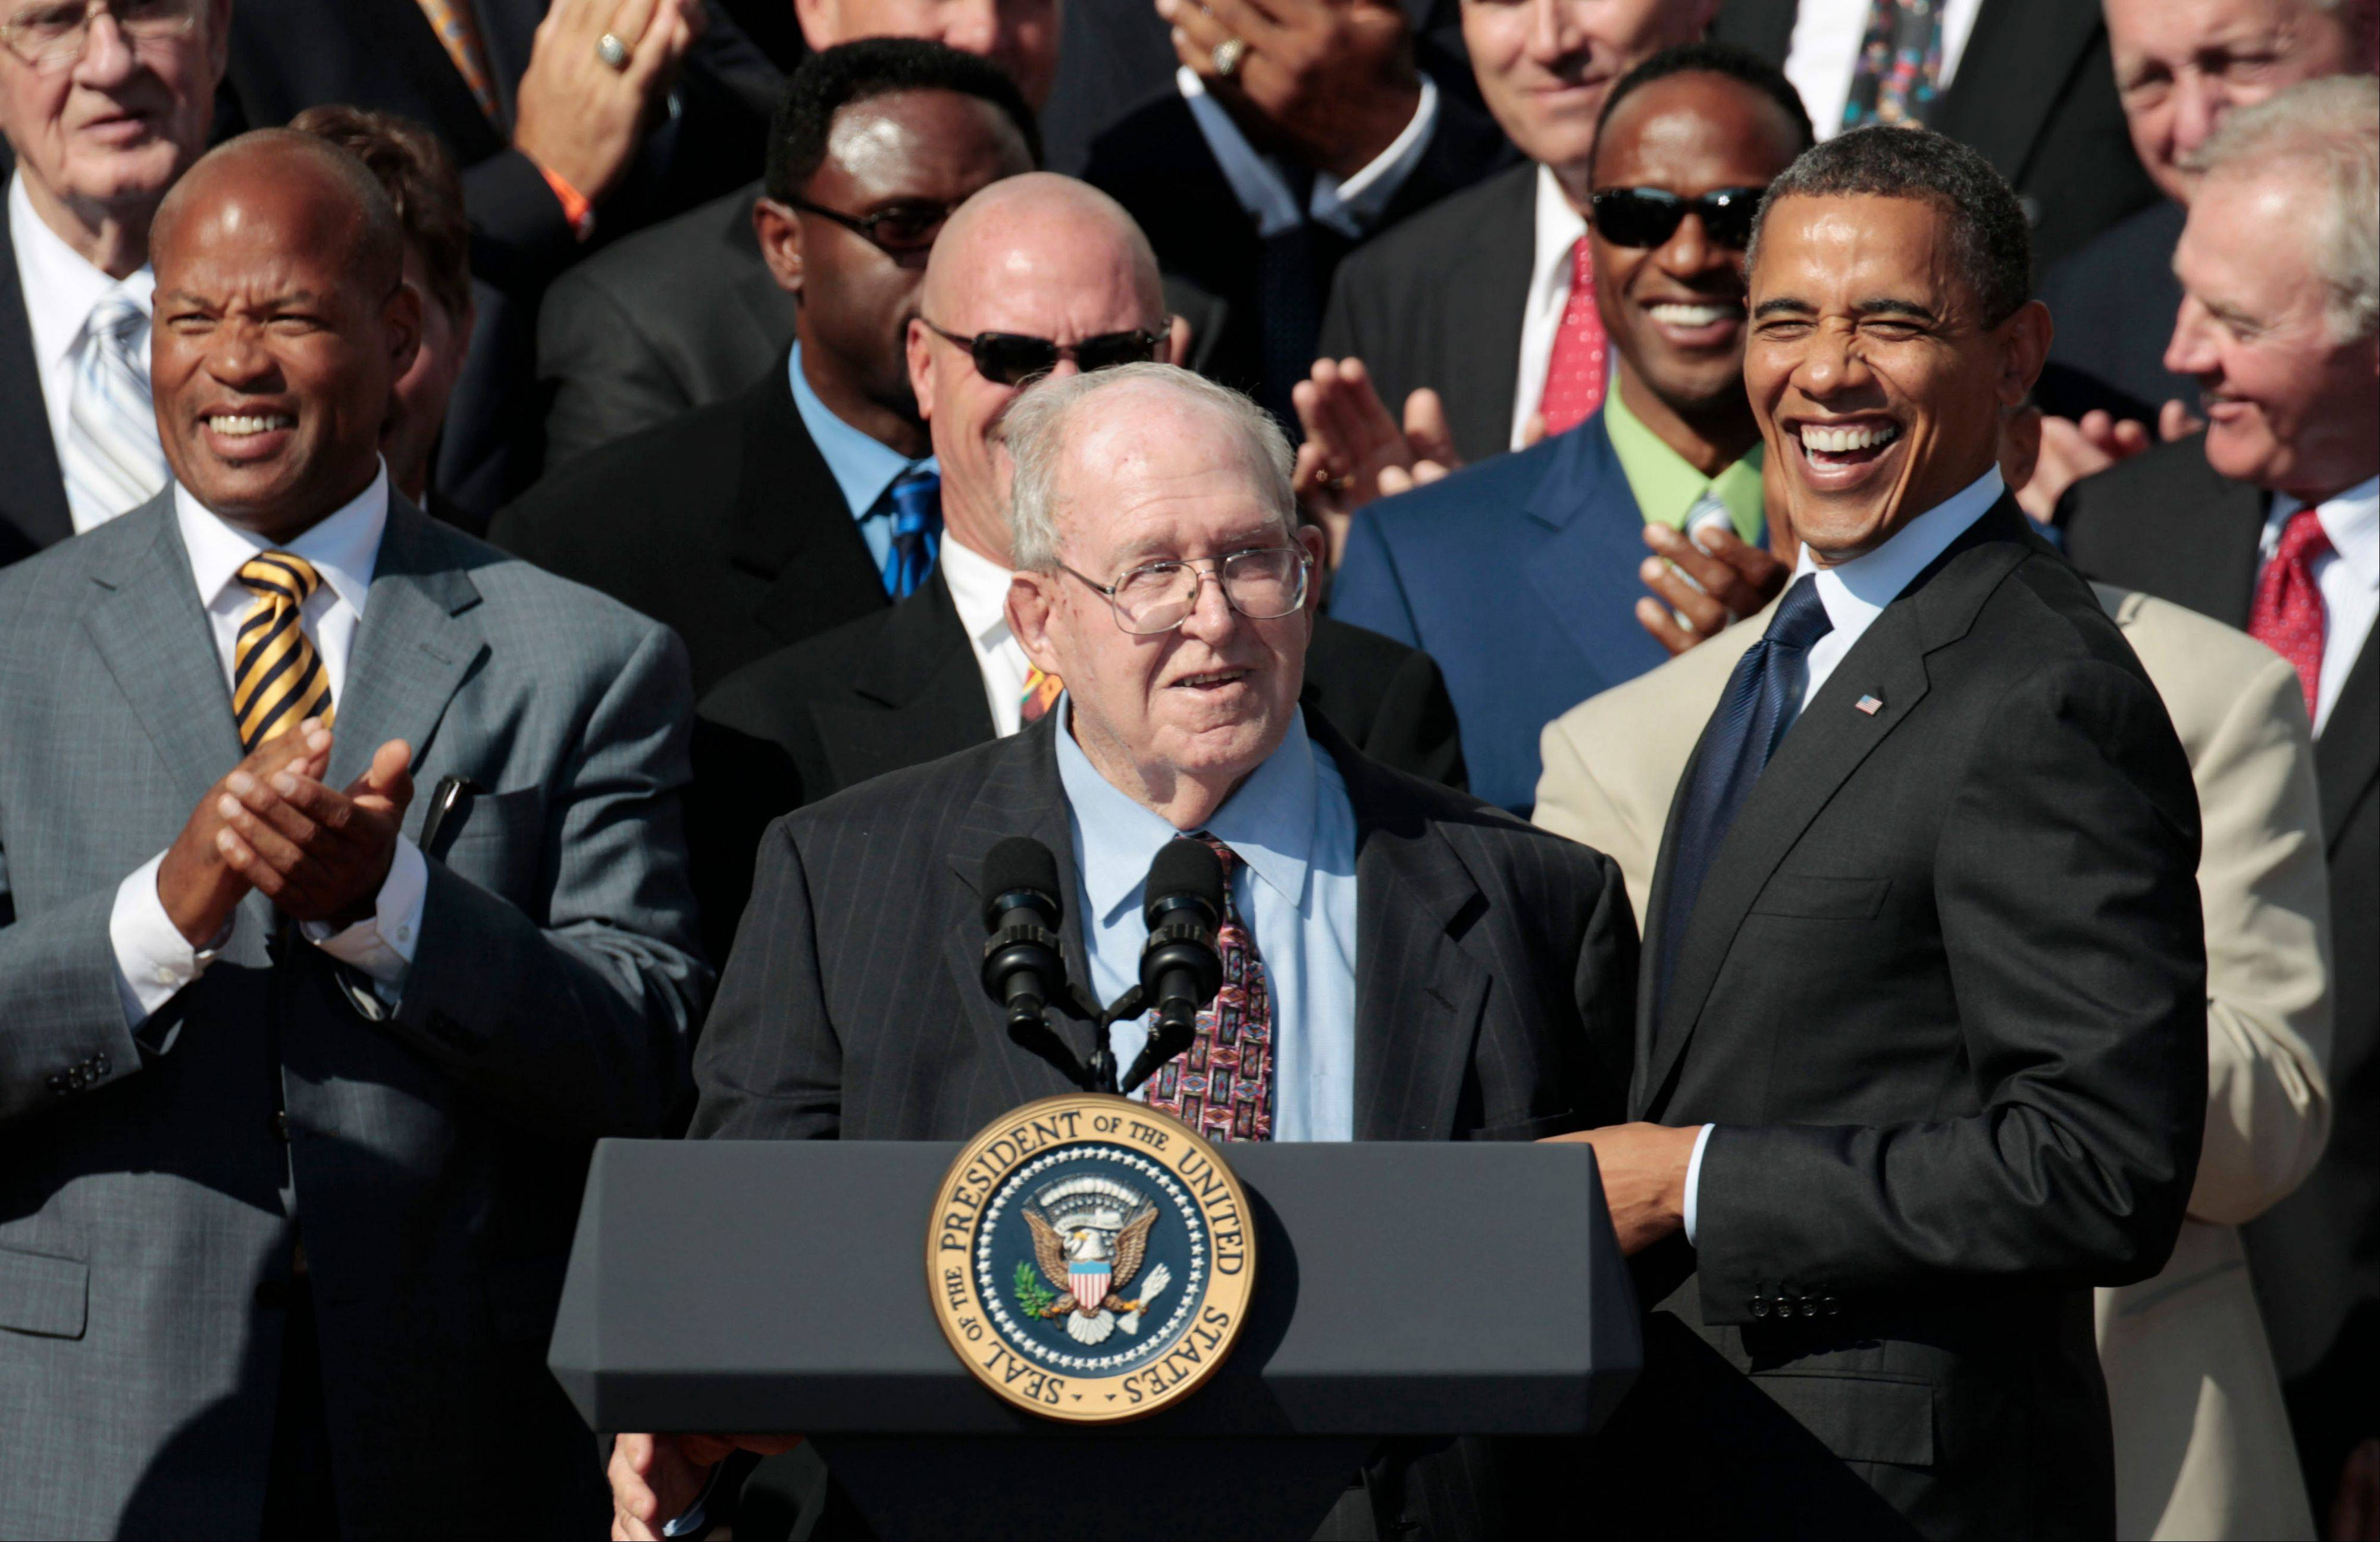 President Barack Obama, right, smiles at defensive cordinator Buddy Ryan, center, as he stands with the 1985 Super Bowl XX Champions Chicago Bears football team during a ceremony on the South Lawn of the White House in Washington, Friday, Oct. 7, 2011.